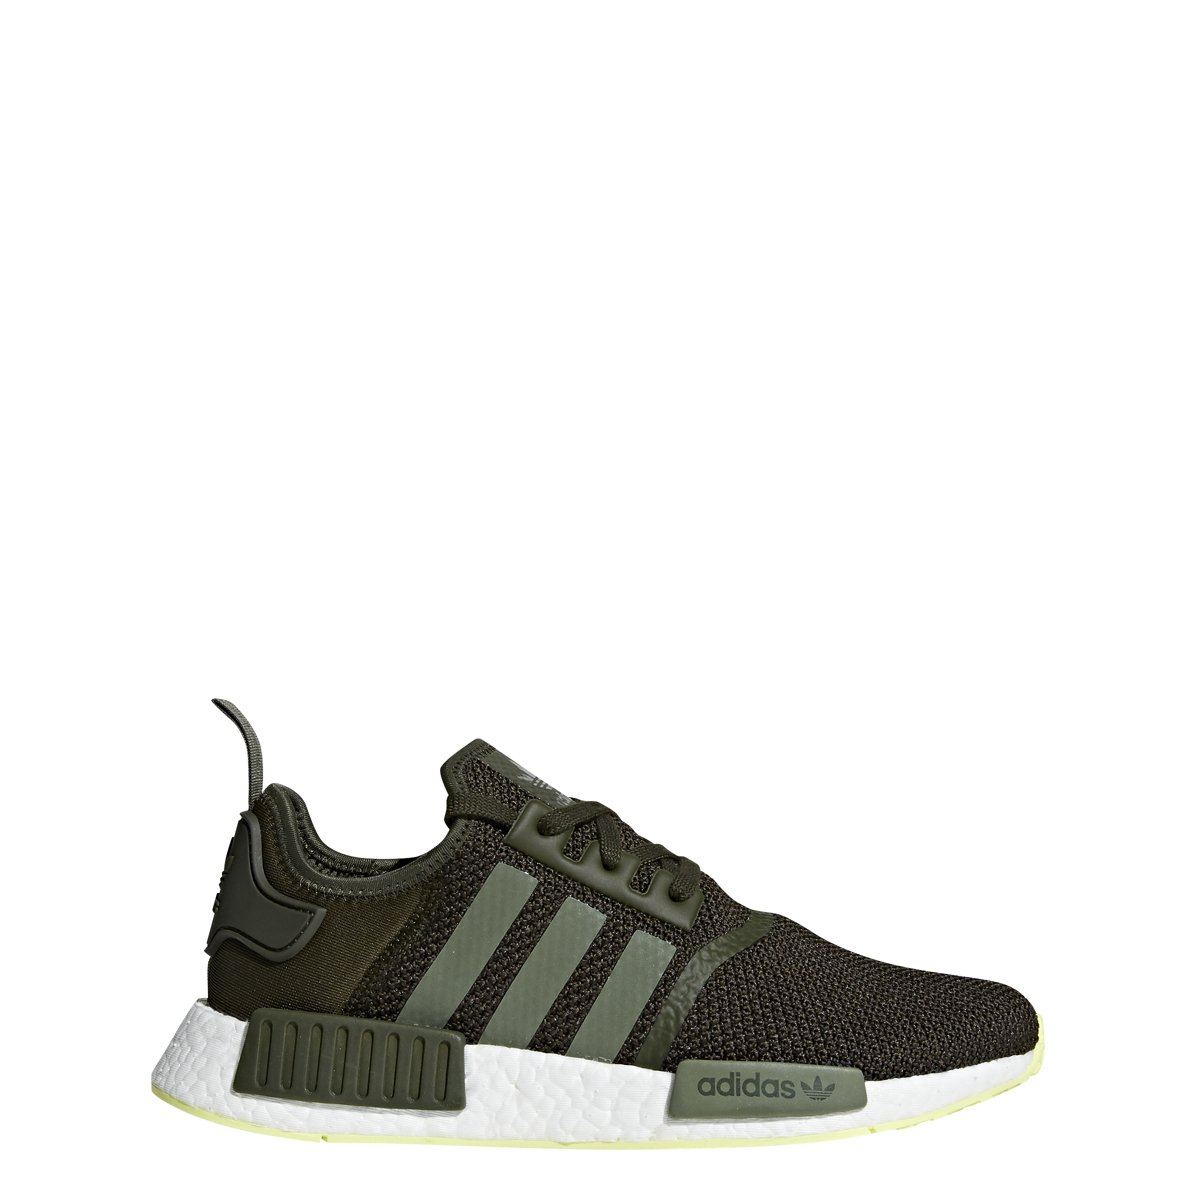 reputable site ed7b3 24d1d Galleon - Adidas Mens NMD R1 Casual Sneakers,Night CargoBase GreenSemi  Frozen Yellow, 10(M) US